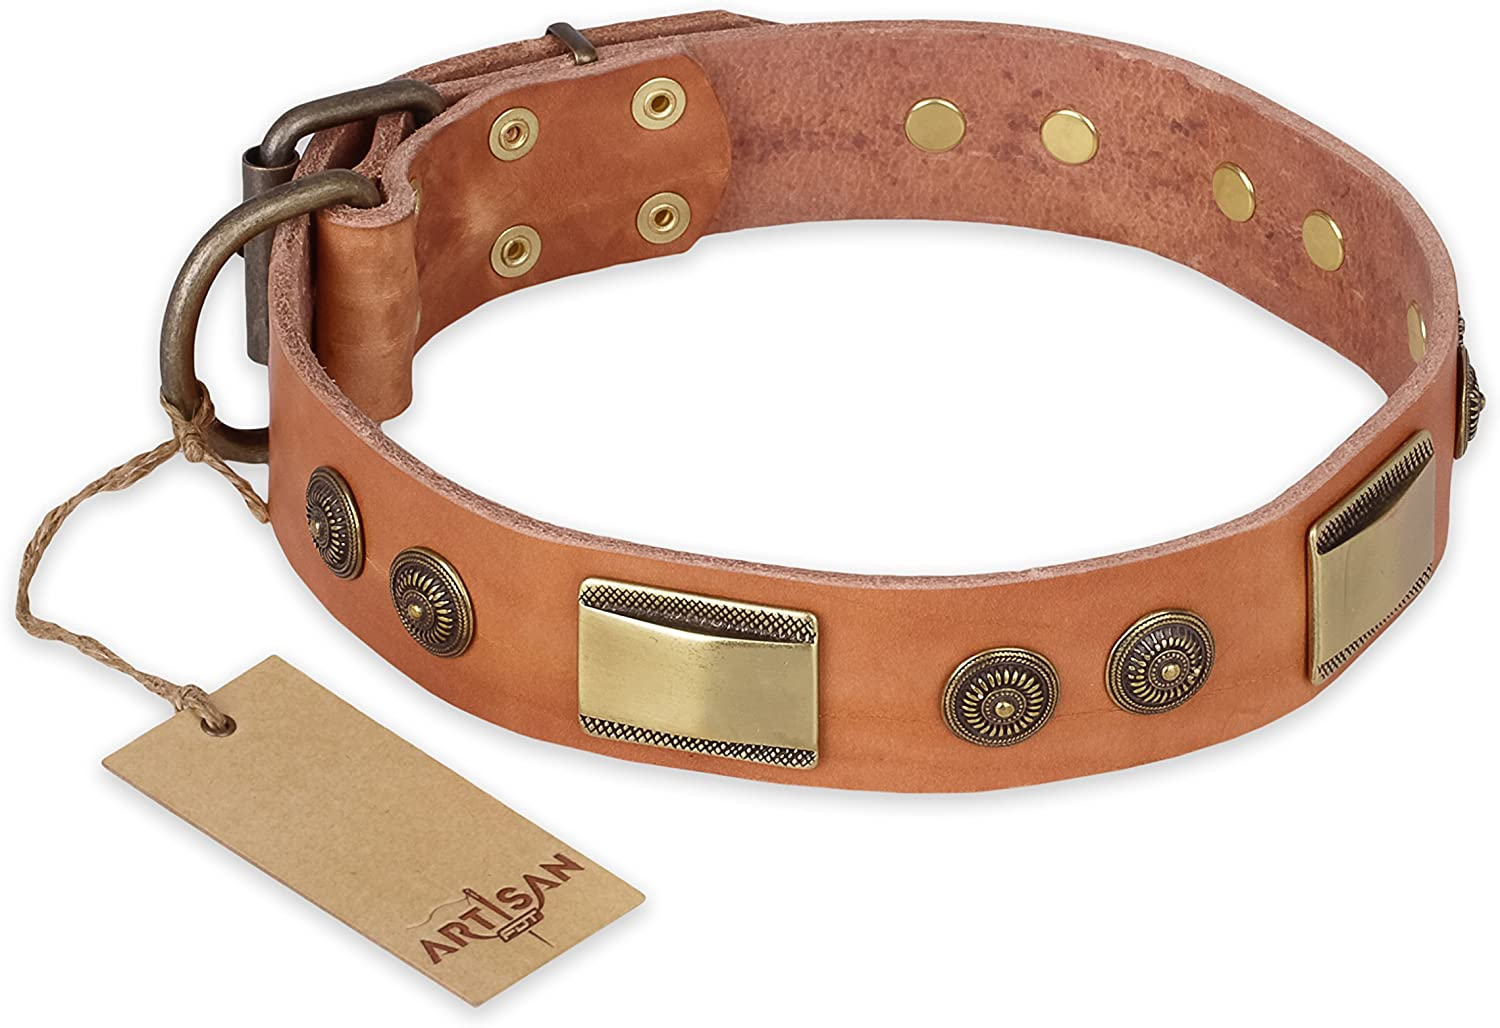 29 inch Fancy Tan Leather Dog Collar   Vintage Trimness  Brass Decor by Artisan  Exclusive Handcrafted Item  1 1 2 inch (40 cm) wide  Gift Box Included